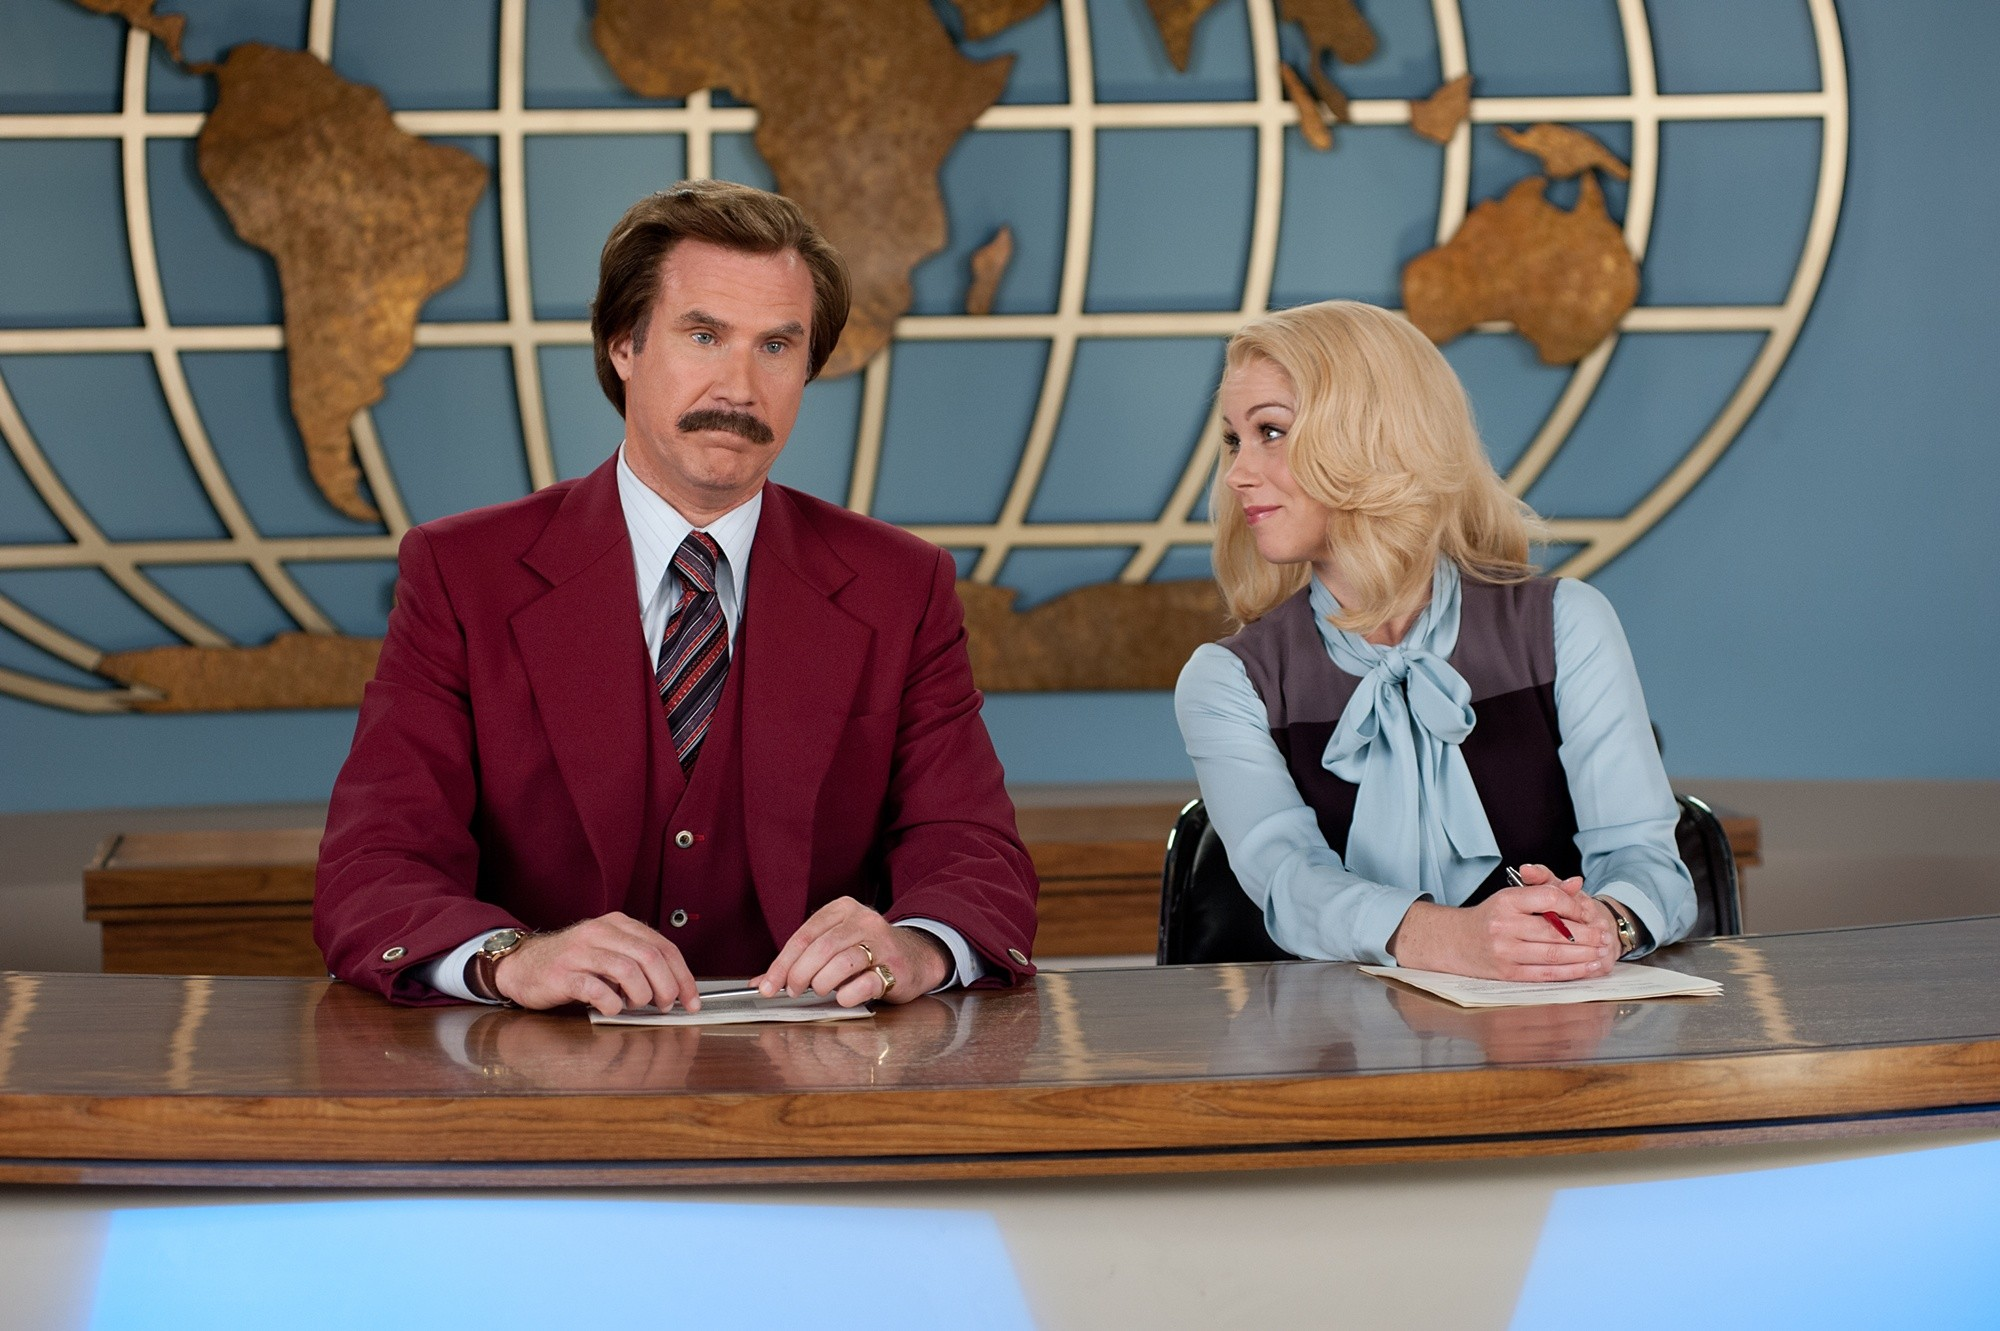 Will Ferrell stars as Ron Burgundy and Christina Applegate stars as Veronica Corningstone in Paramount Pictures' Anchorman: The Legend Continues (2013)